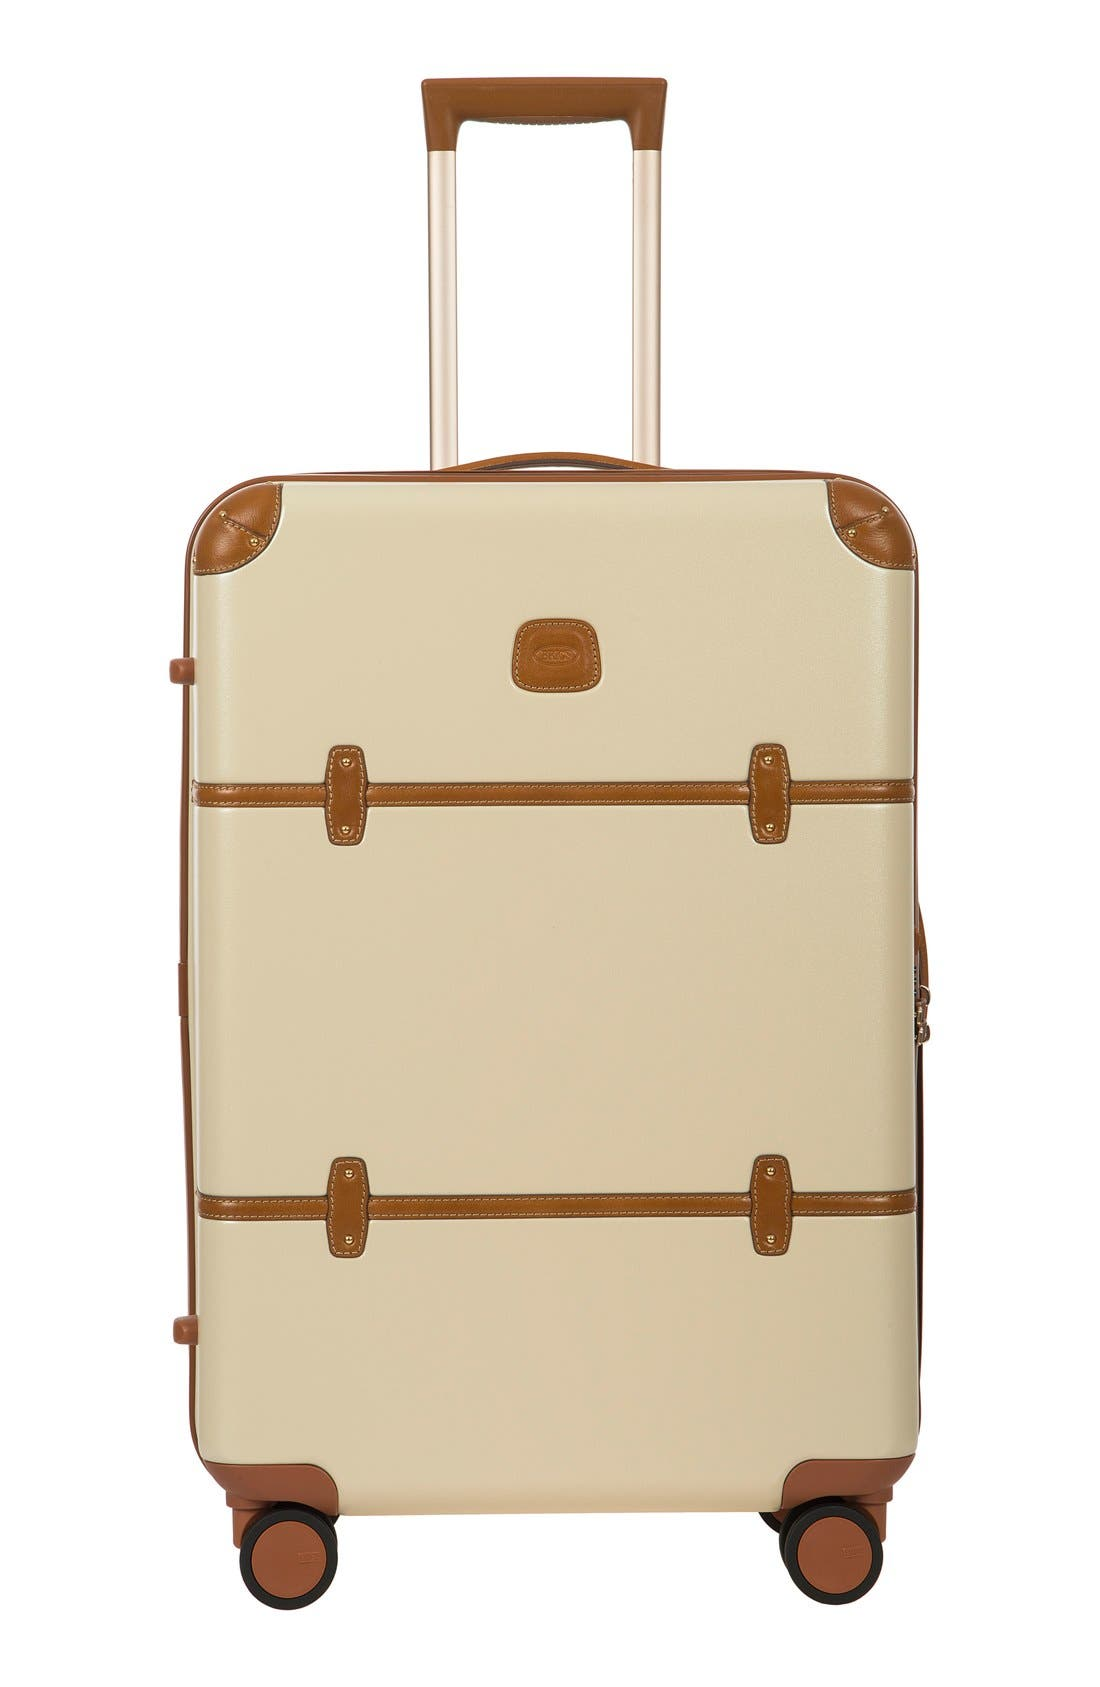 Main Image - Bric's Bellagio 2.0 27 Inch Rolling Spinner Suitcase